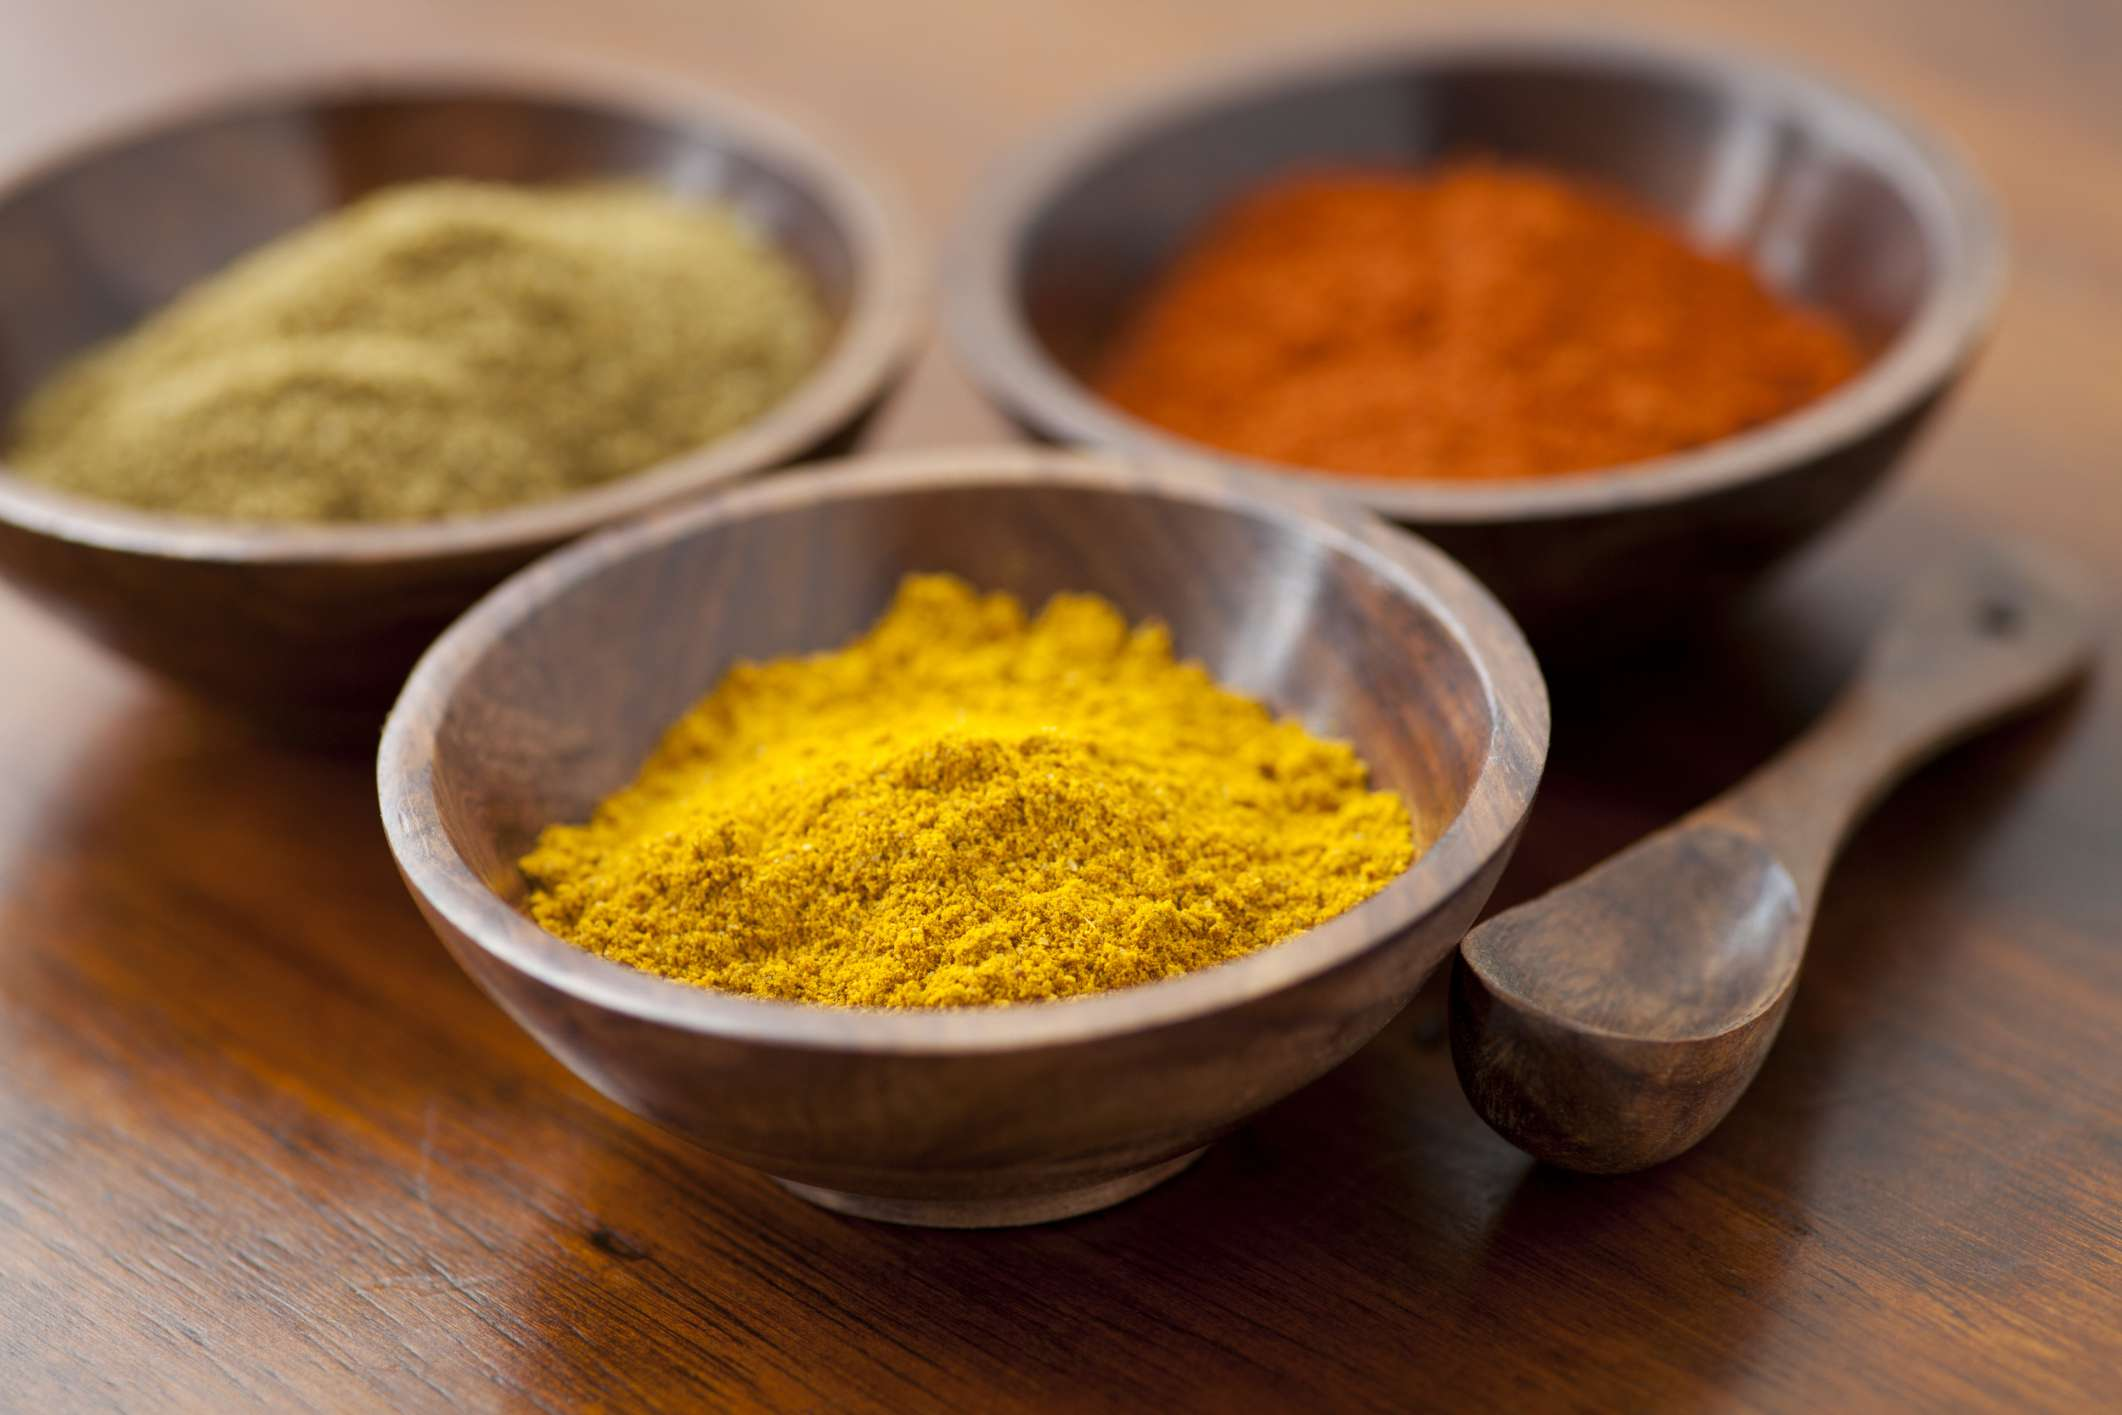 Small wooden bowls of spices including turmeric